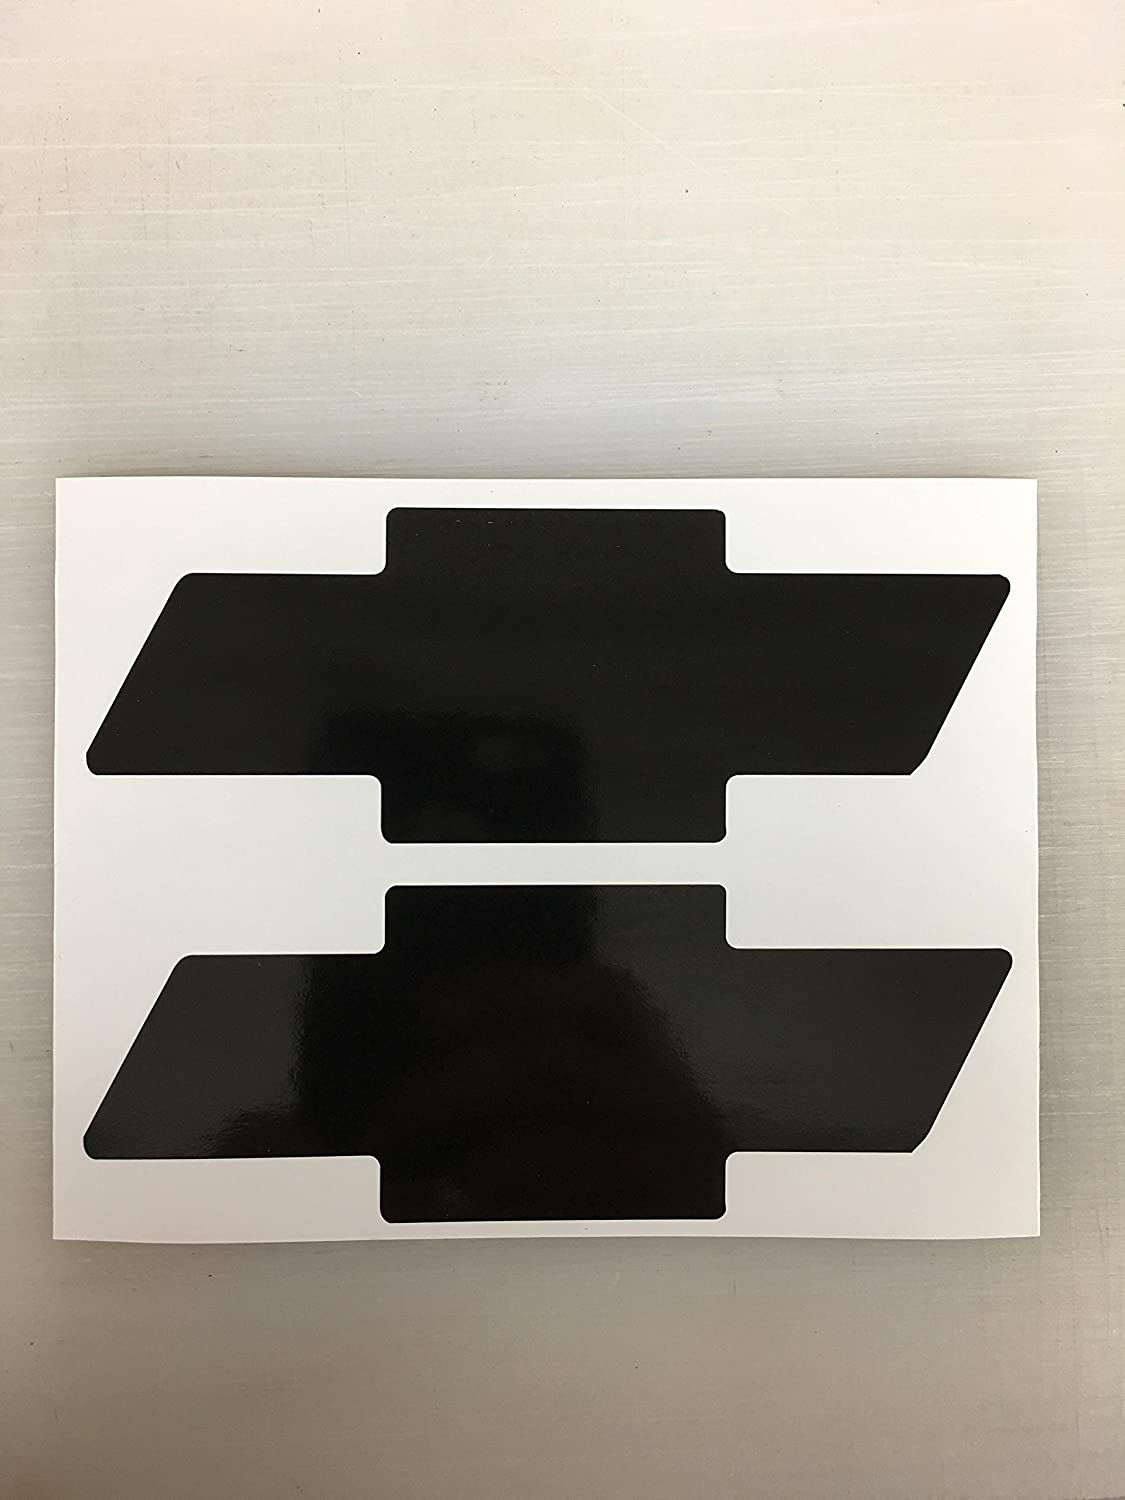 2 Chevrolet Chevy Bowtie Decal by SBD Decals Various Sizes & Color (6 inches, Black)